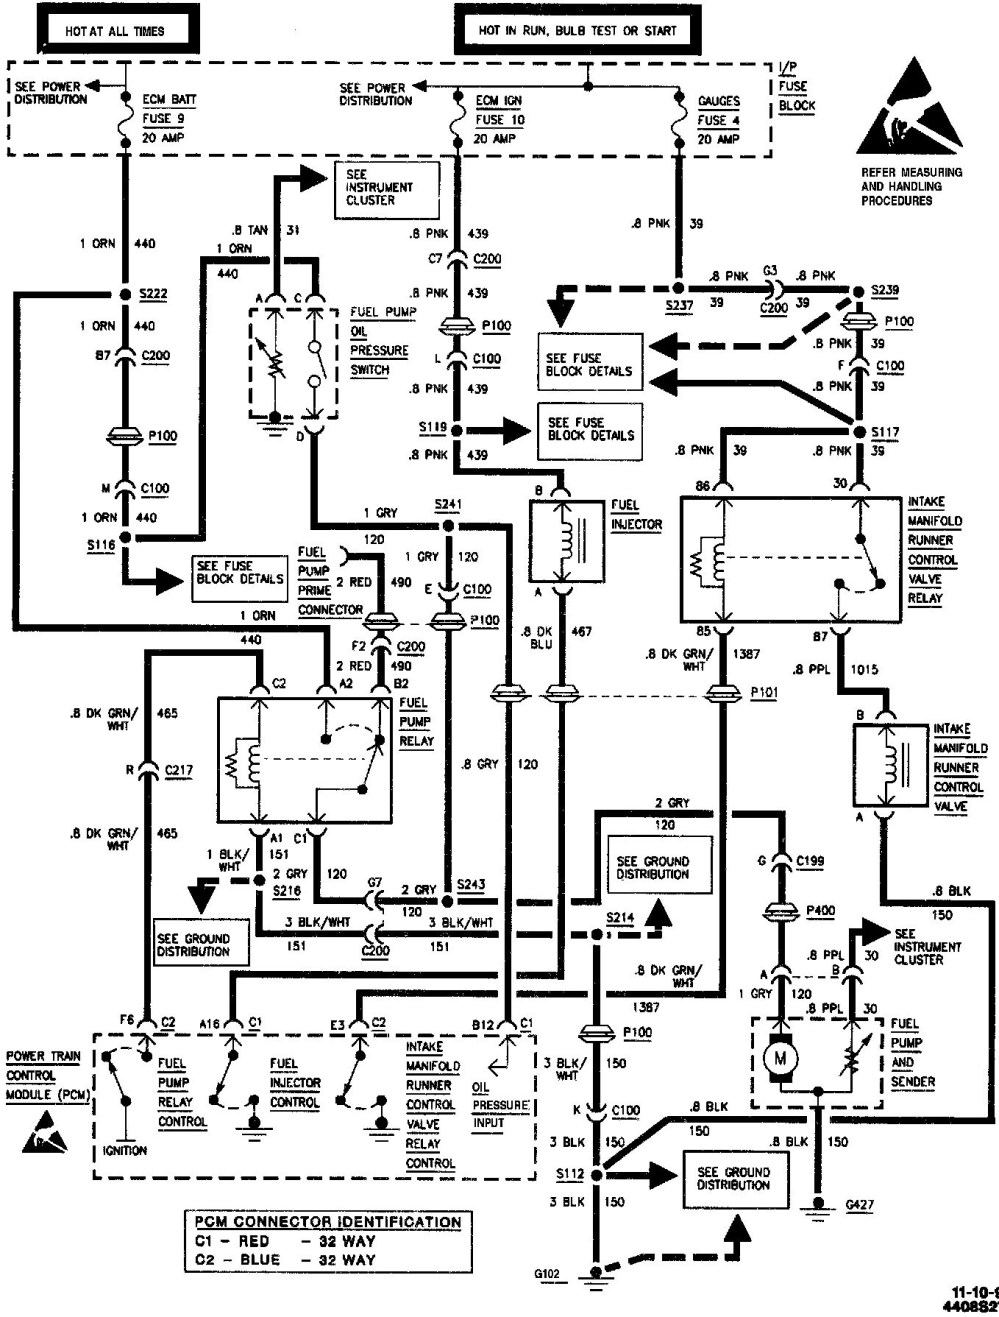 medium resolution of chevy s10 engine wire harness wiring diagram 2000 s10 wiring harness diagram s10 wiring harness